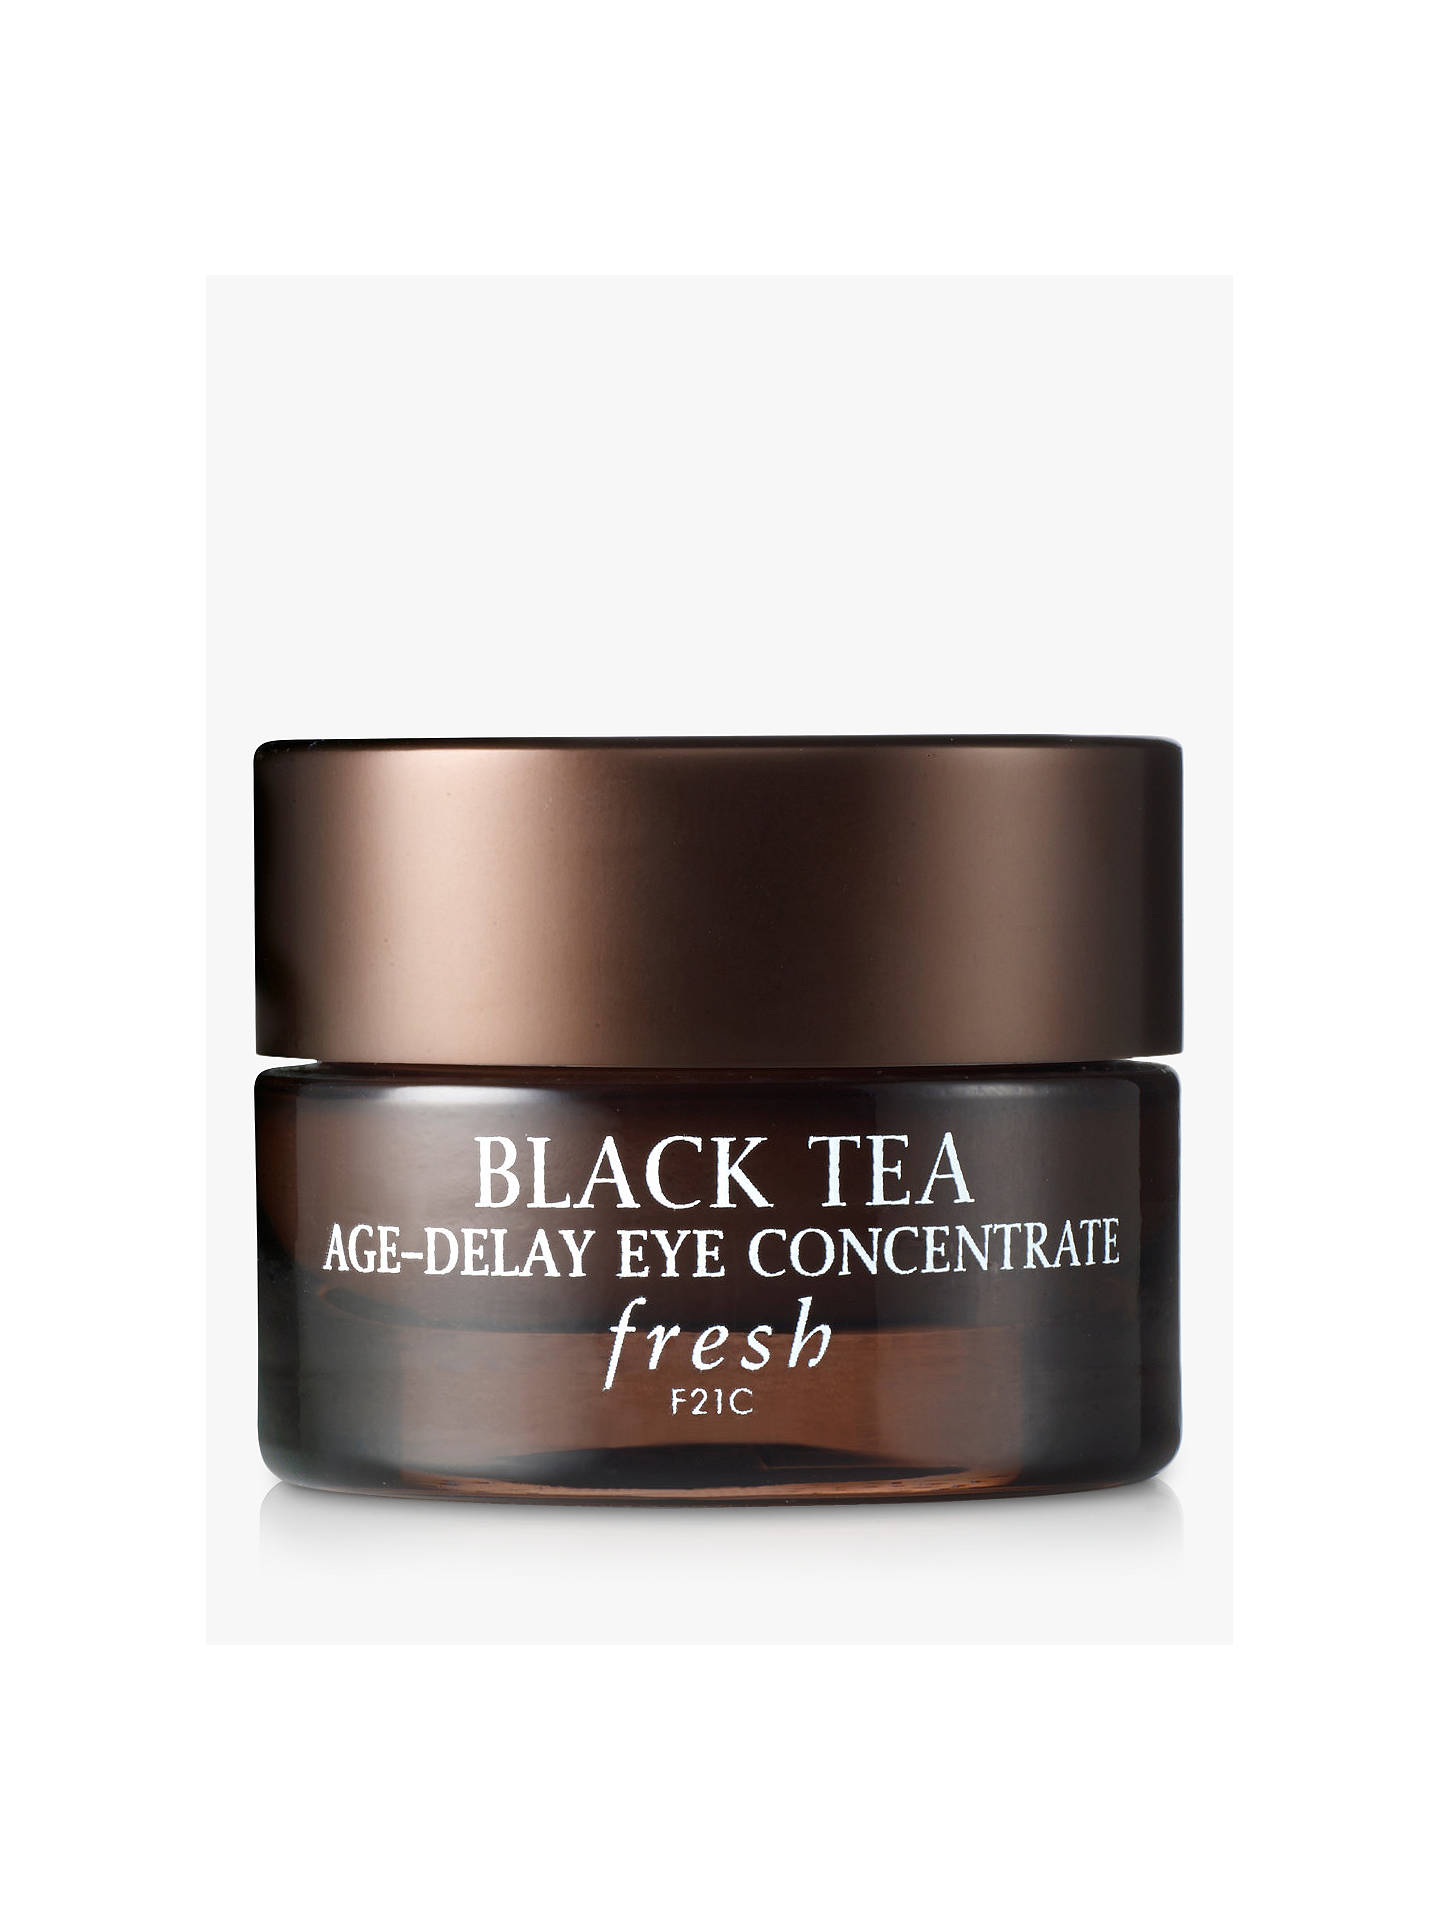 related product products/images/fresh-BlackTeaAgeDelayEyeConcentrate.com/is/image/JohnLewis/237034746